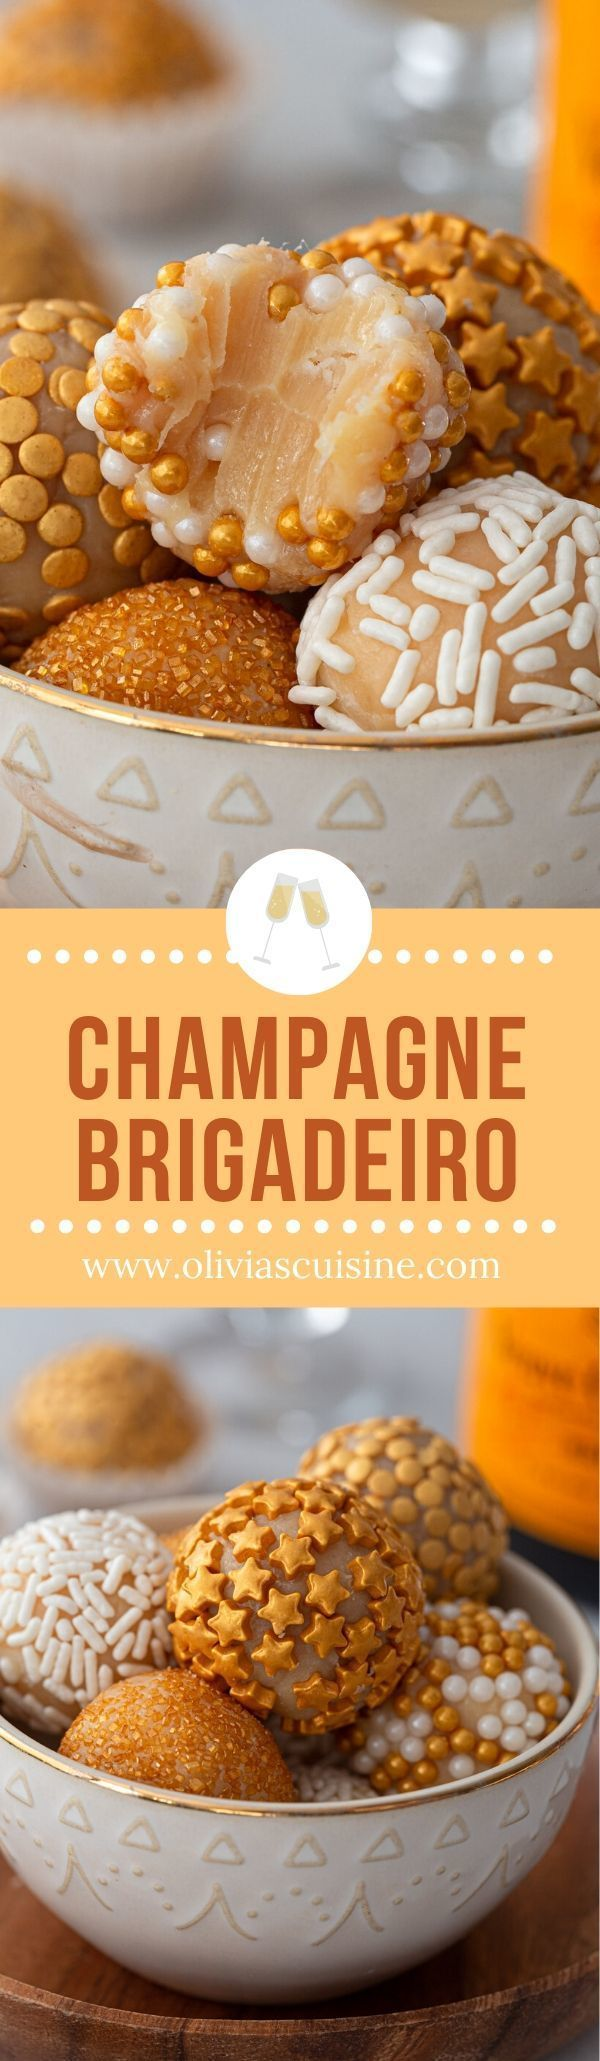 Champagne Brigadeiro | www.oliviascuisine.com | If you love classic brigadeiro, you won't be able to resist this champagne version. A sparkly and delicious treat to celebrate New Year's Eve in style! (Follow @oliviascuisine for more delicious recipes.) #brigadeiro #brigadeiros #brazilianfood #truffles #champagne